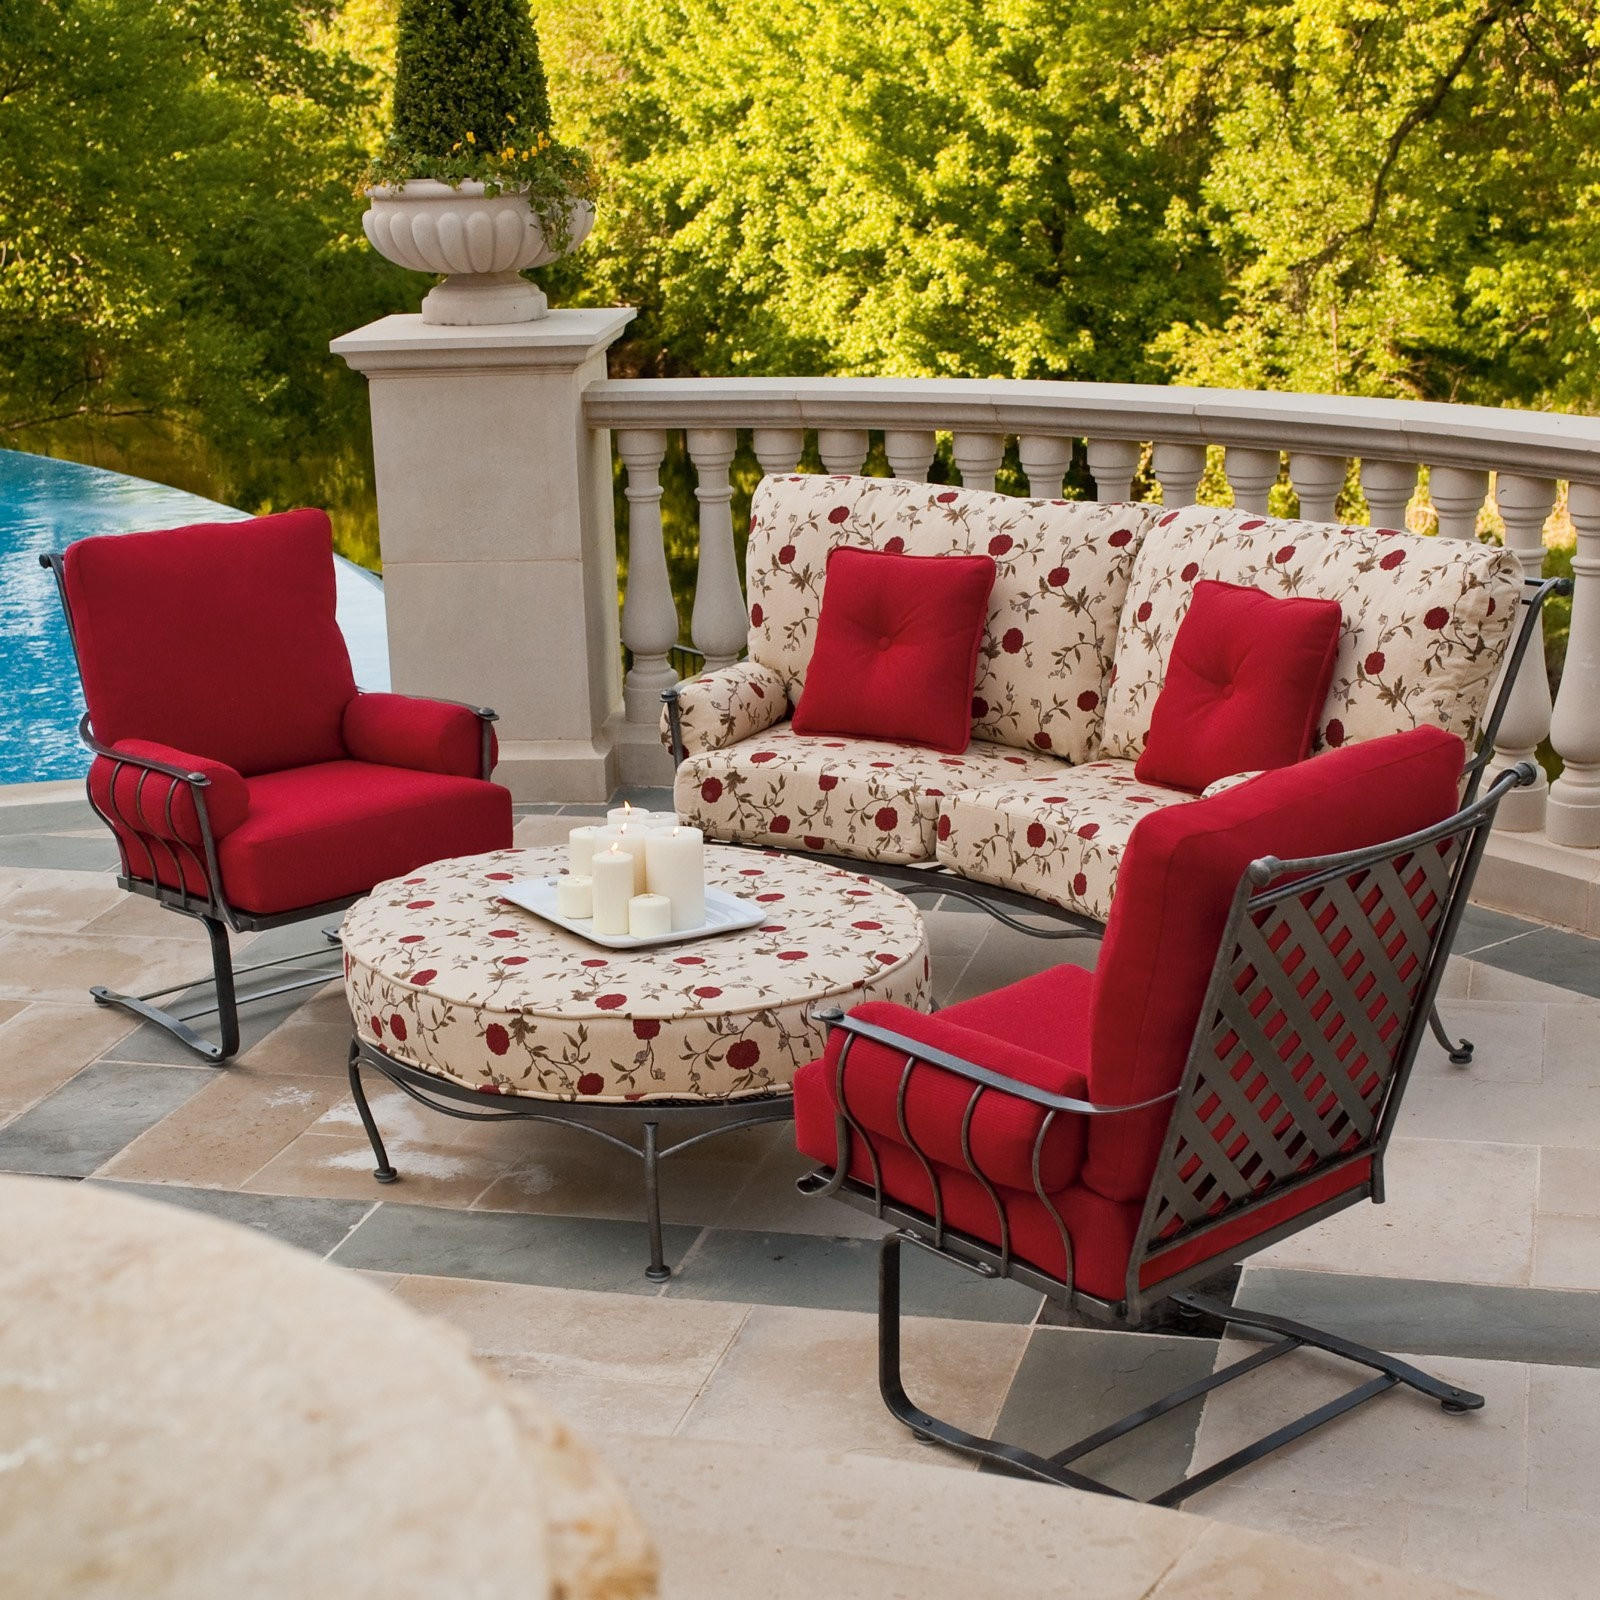 Best ideas about Discontinued Patio Furniture . Save or Pin Outdoor Patio Furniture Cushionsca Cushions Clearance Now.